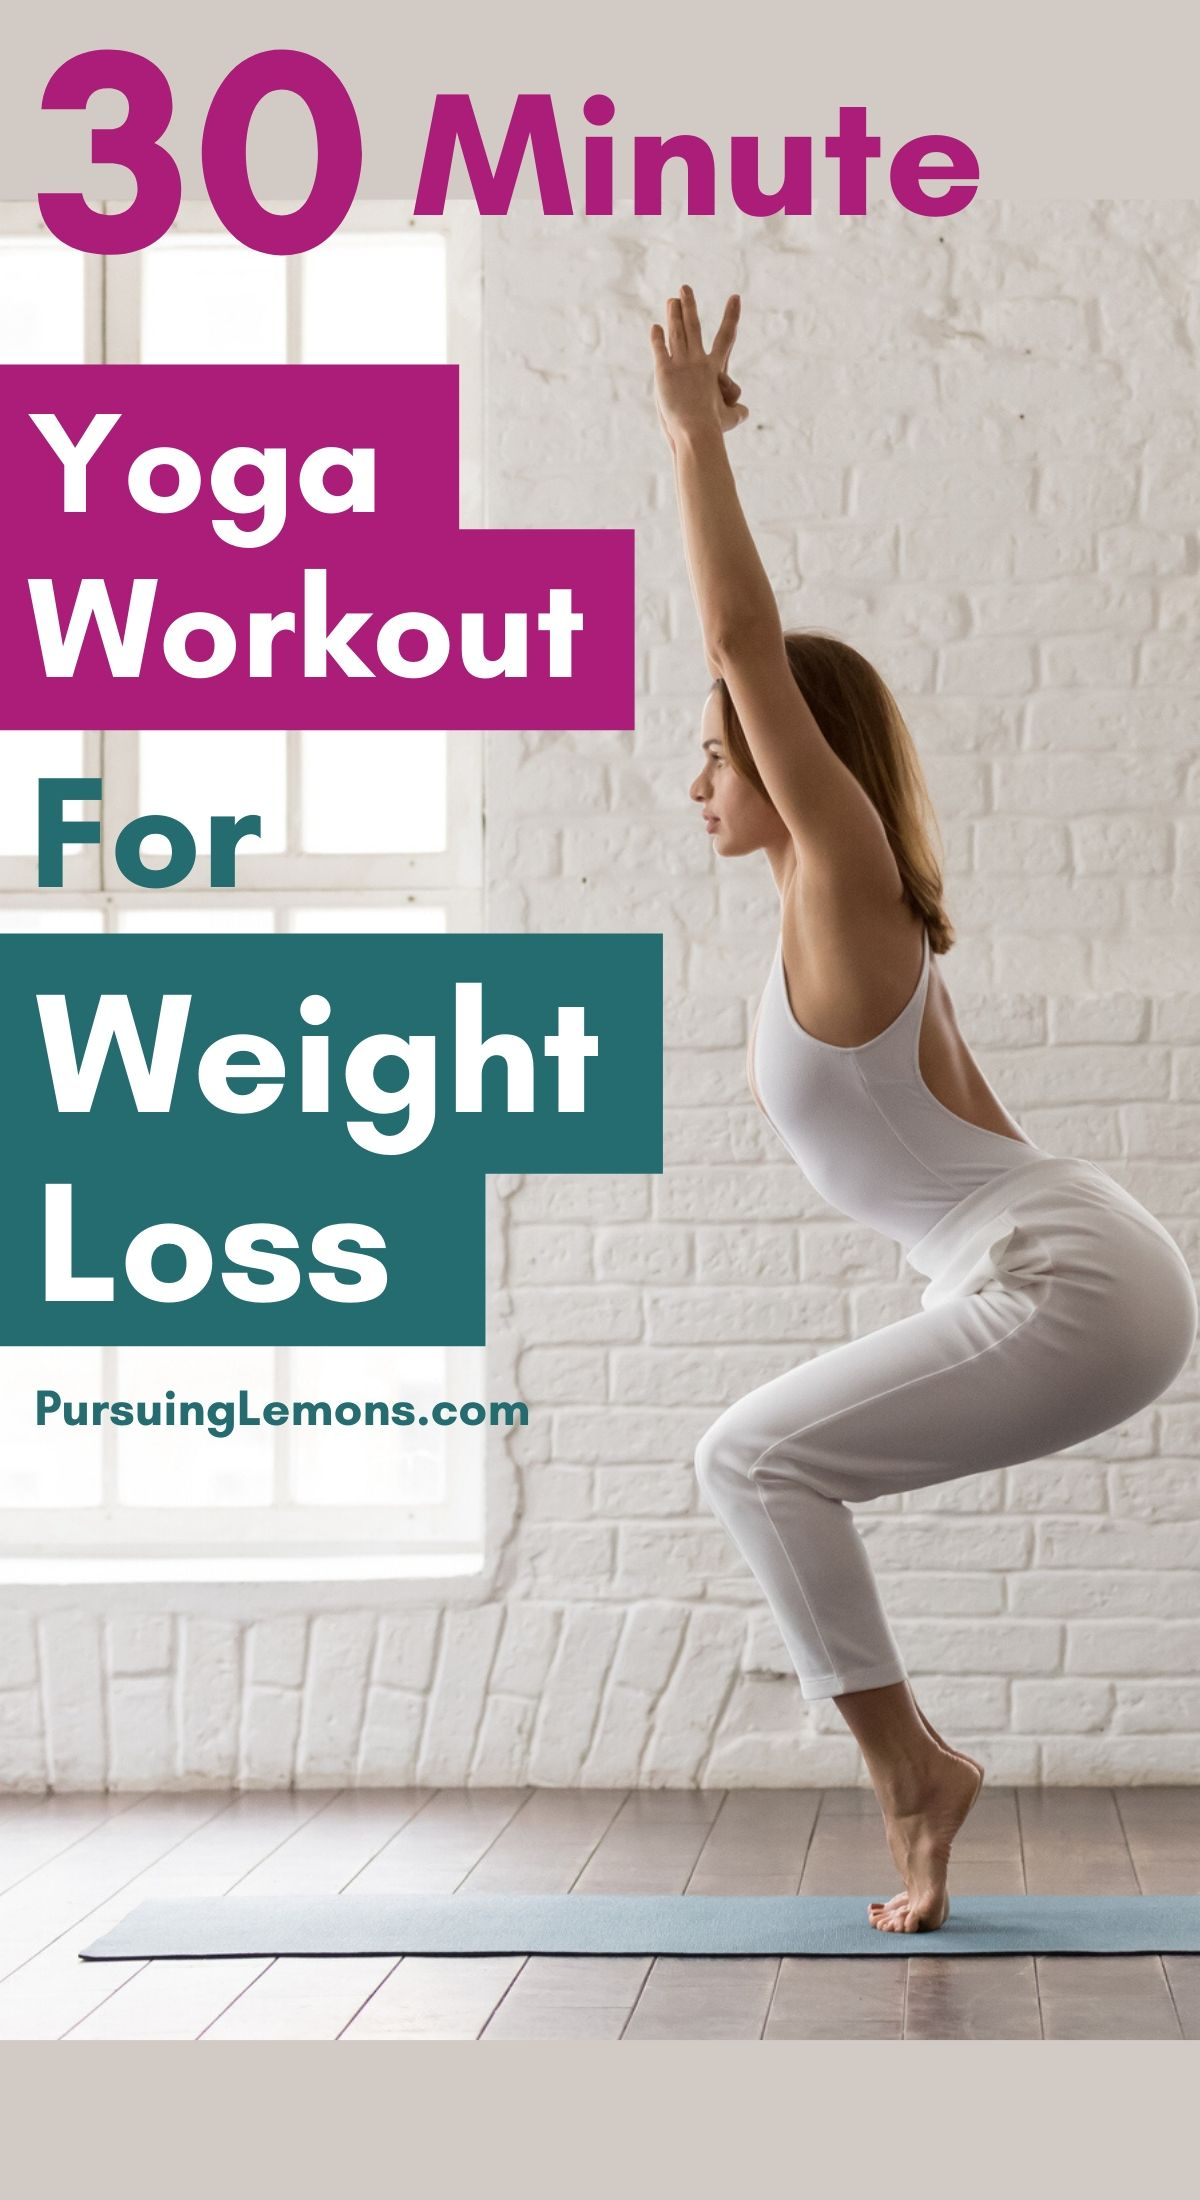 Are you looking for ways to lose weight This yoga routine will help you to lose weight and tone your body. Try out this 30 minute yoga workout for weight loss to get your dream body! #yoga #weightloss #yogaforweightloss #yogaworkout